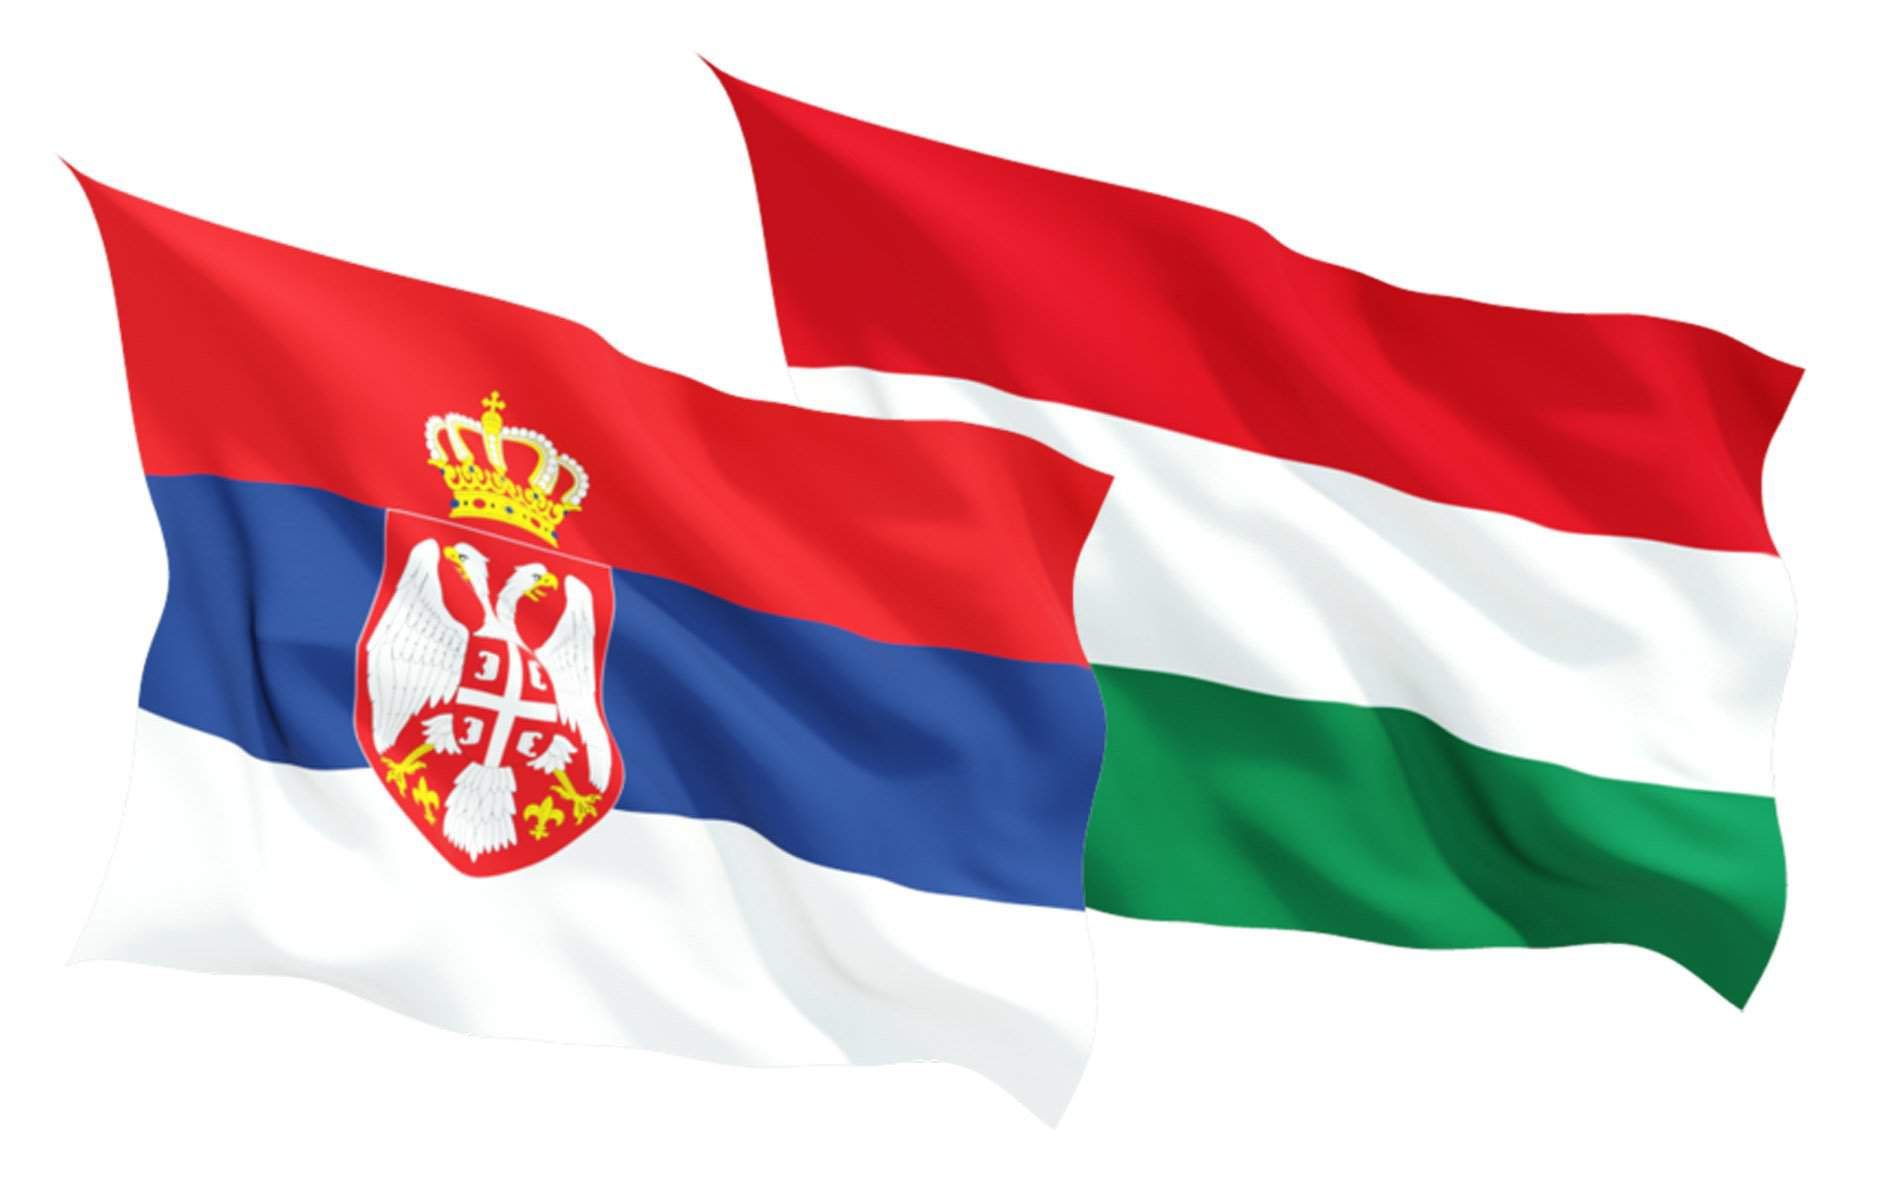 Hungary to support Vojvodina economy development with 130 million euros